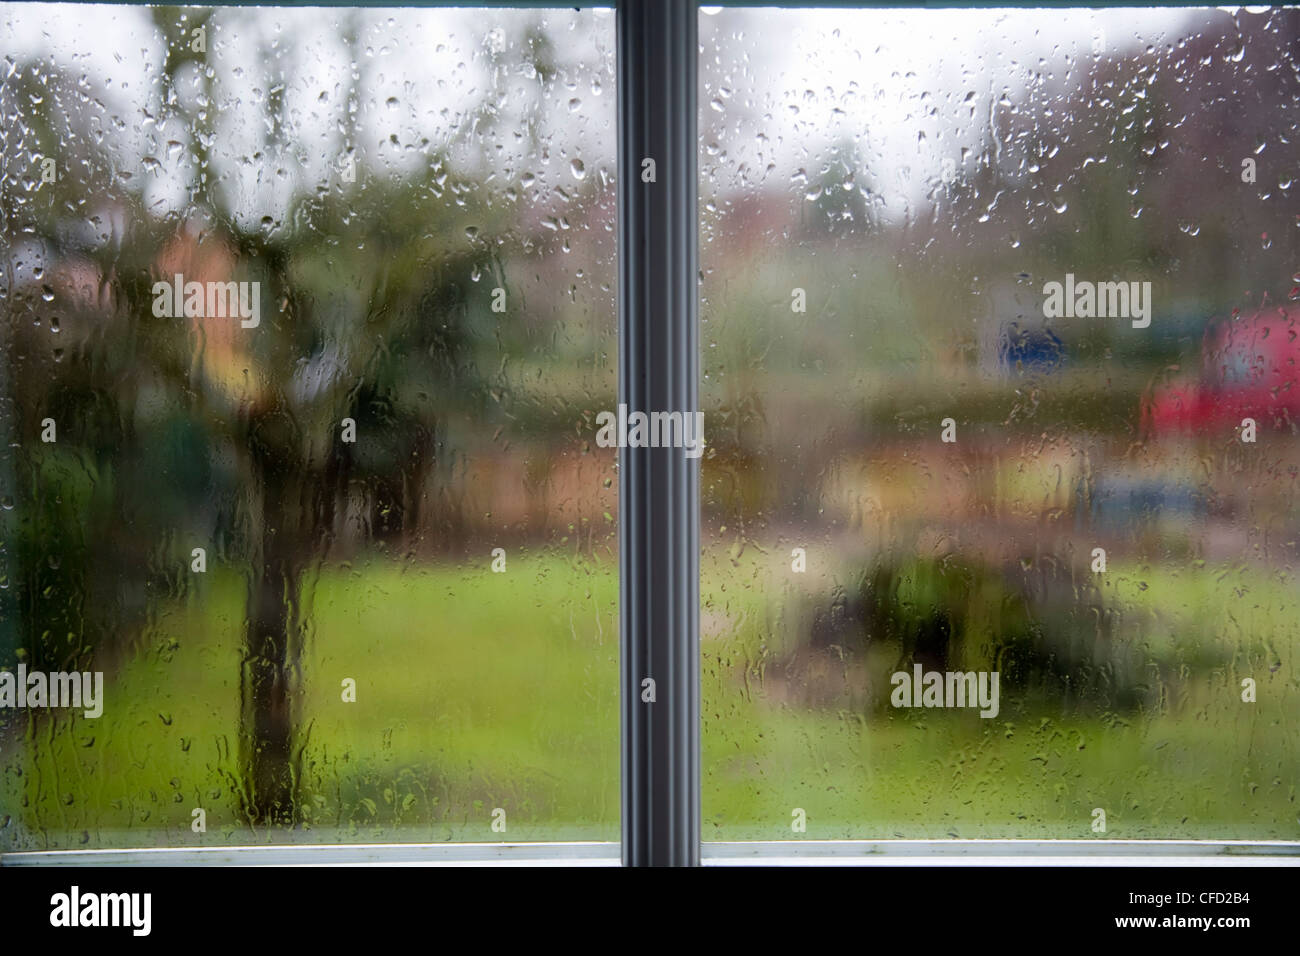 Rain drops on house window wet weather day looking out - Stock Image